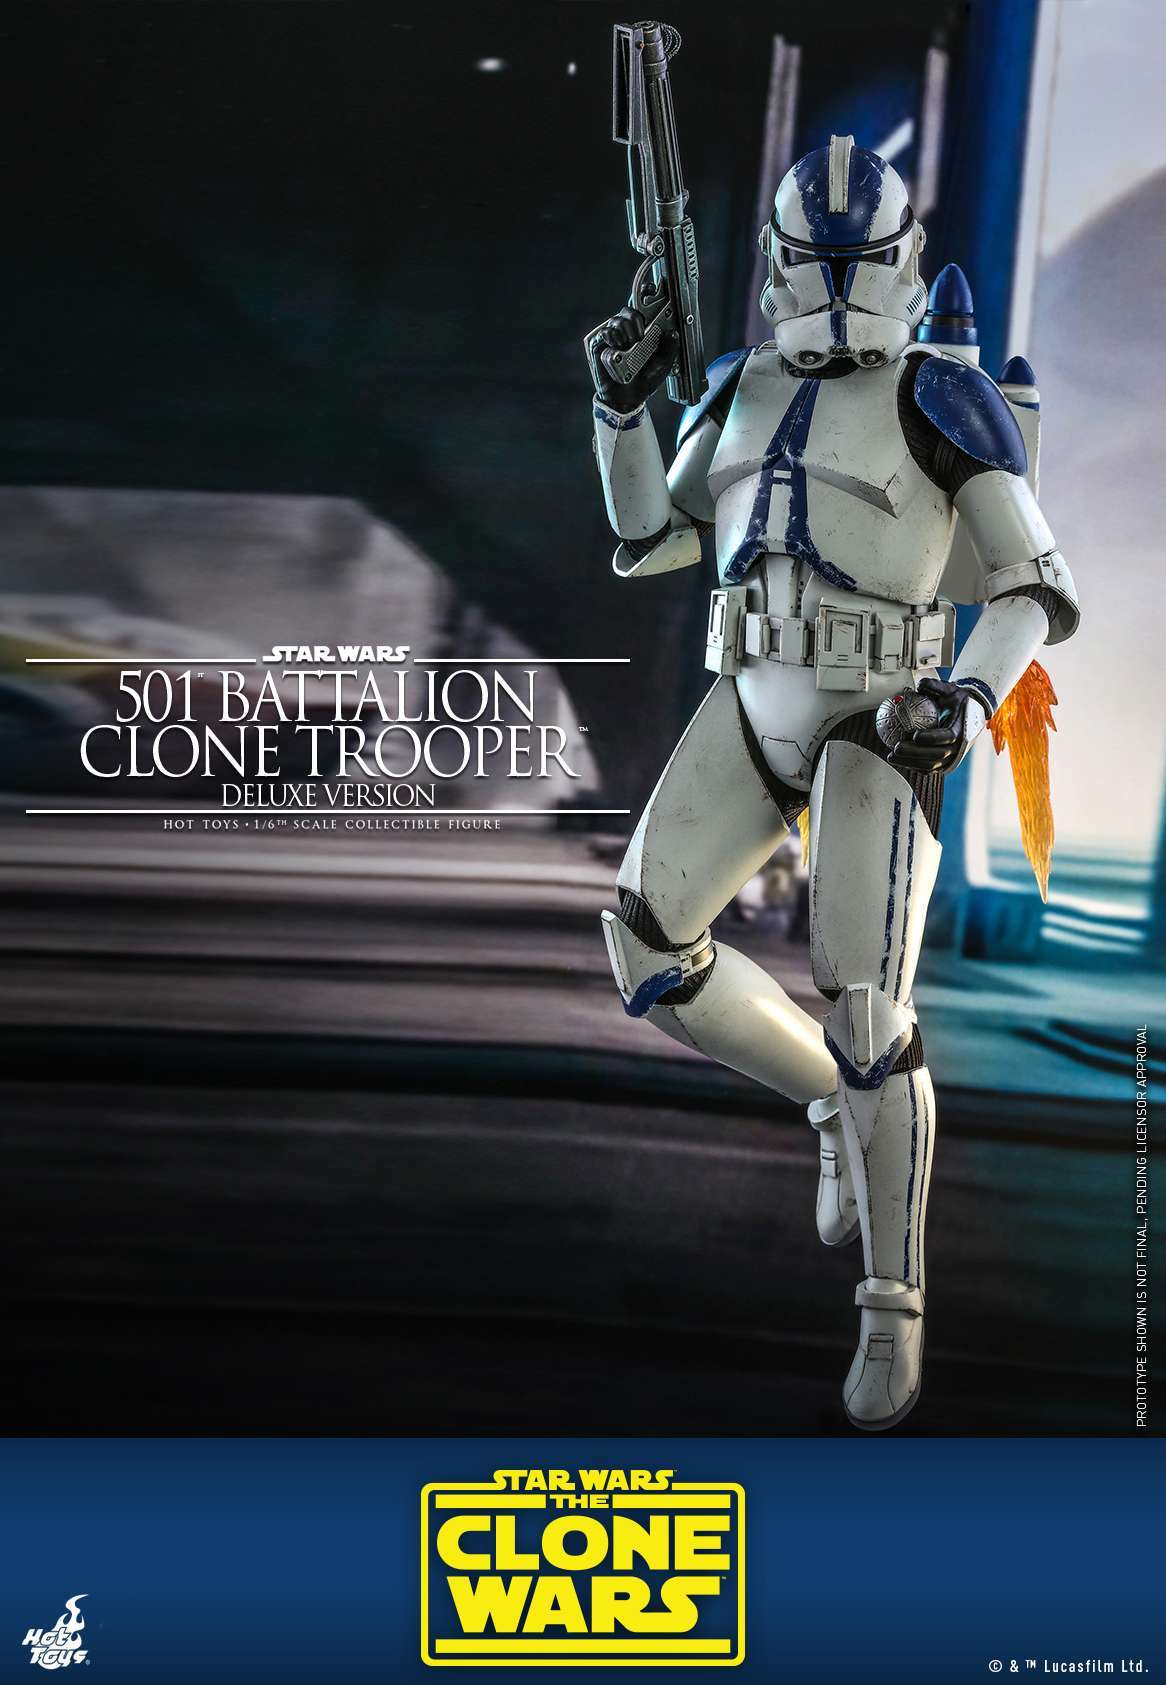 Hot Toys - SWCW - 501 Battalion Clone Trooper collectible figure (Deluxe)_PR1